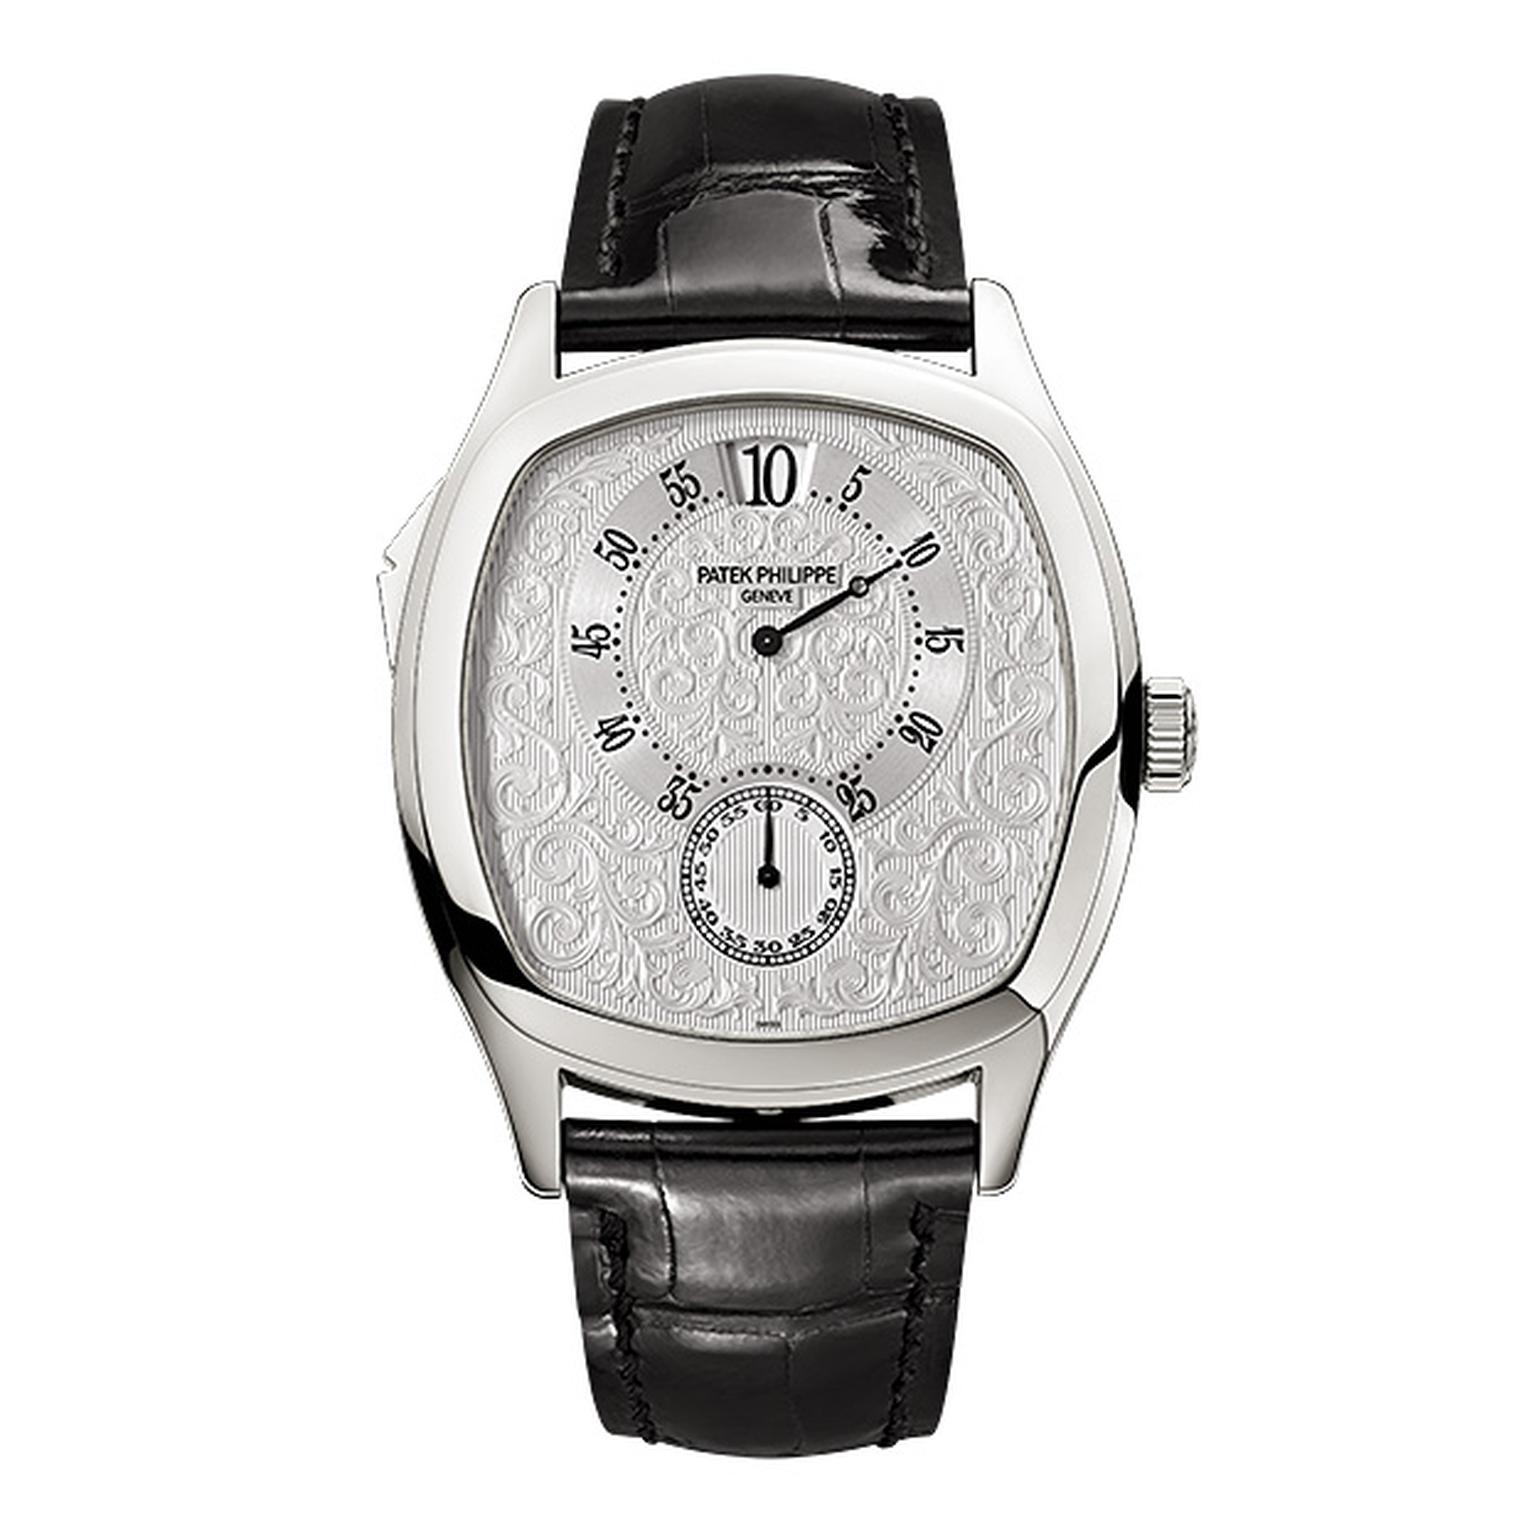 Patek Philippe Chiming Jump Hour watch